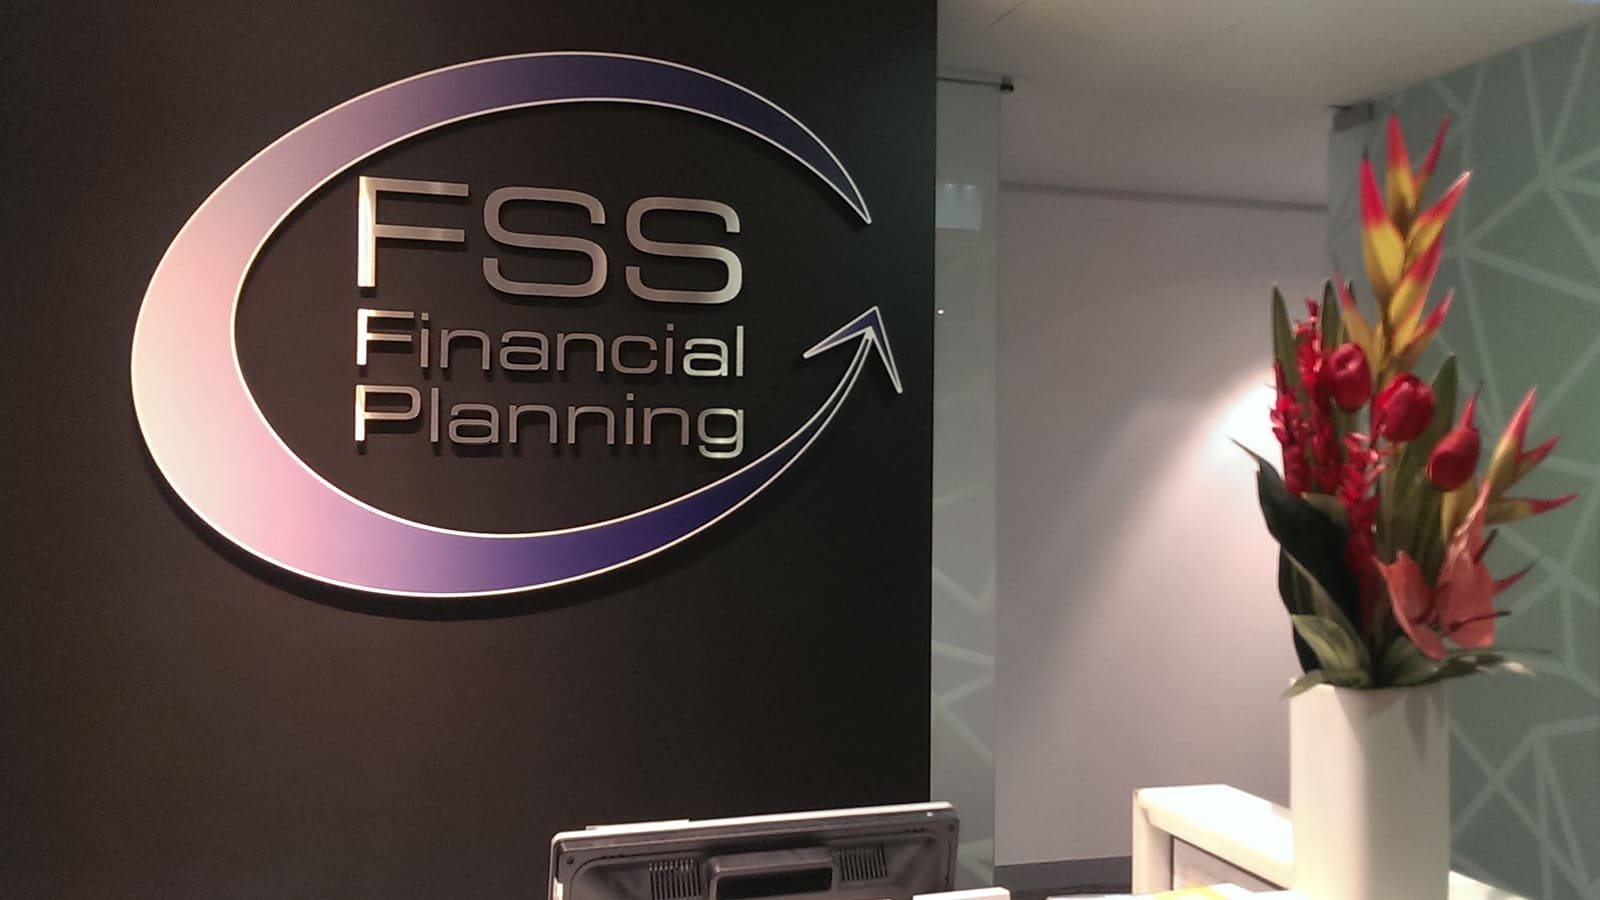 reception-fss-financial-planning